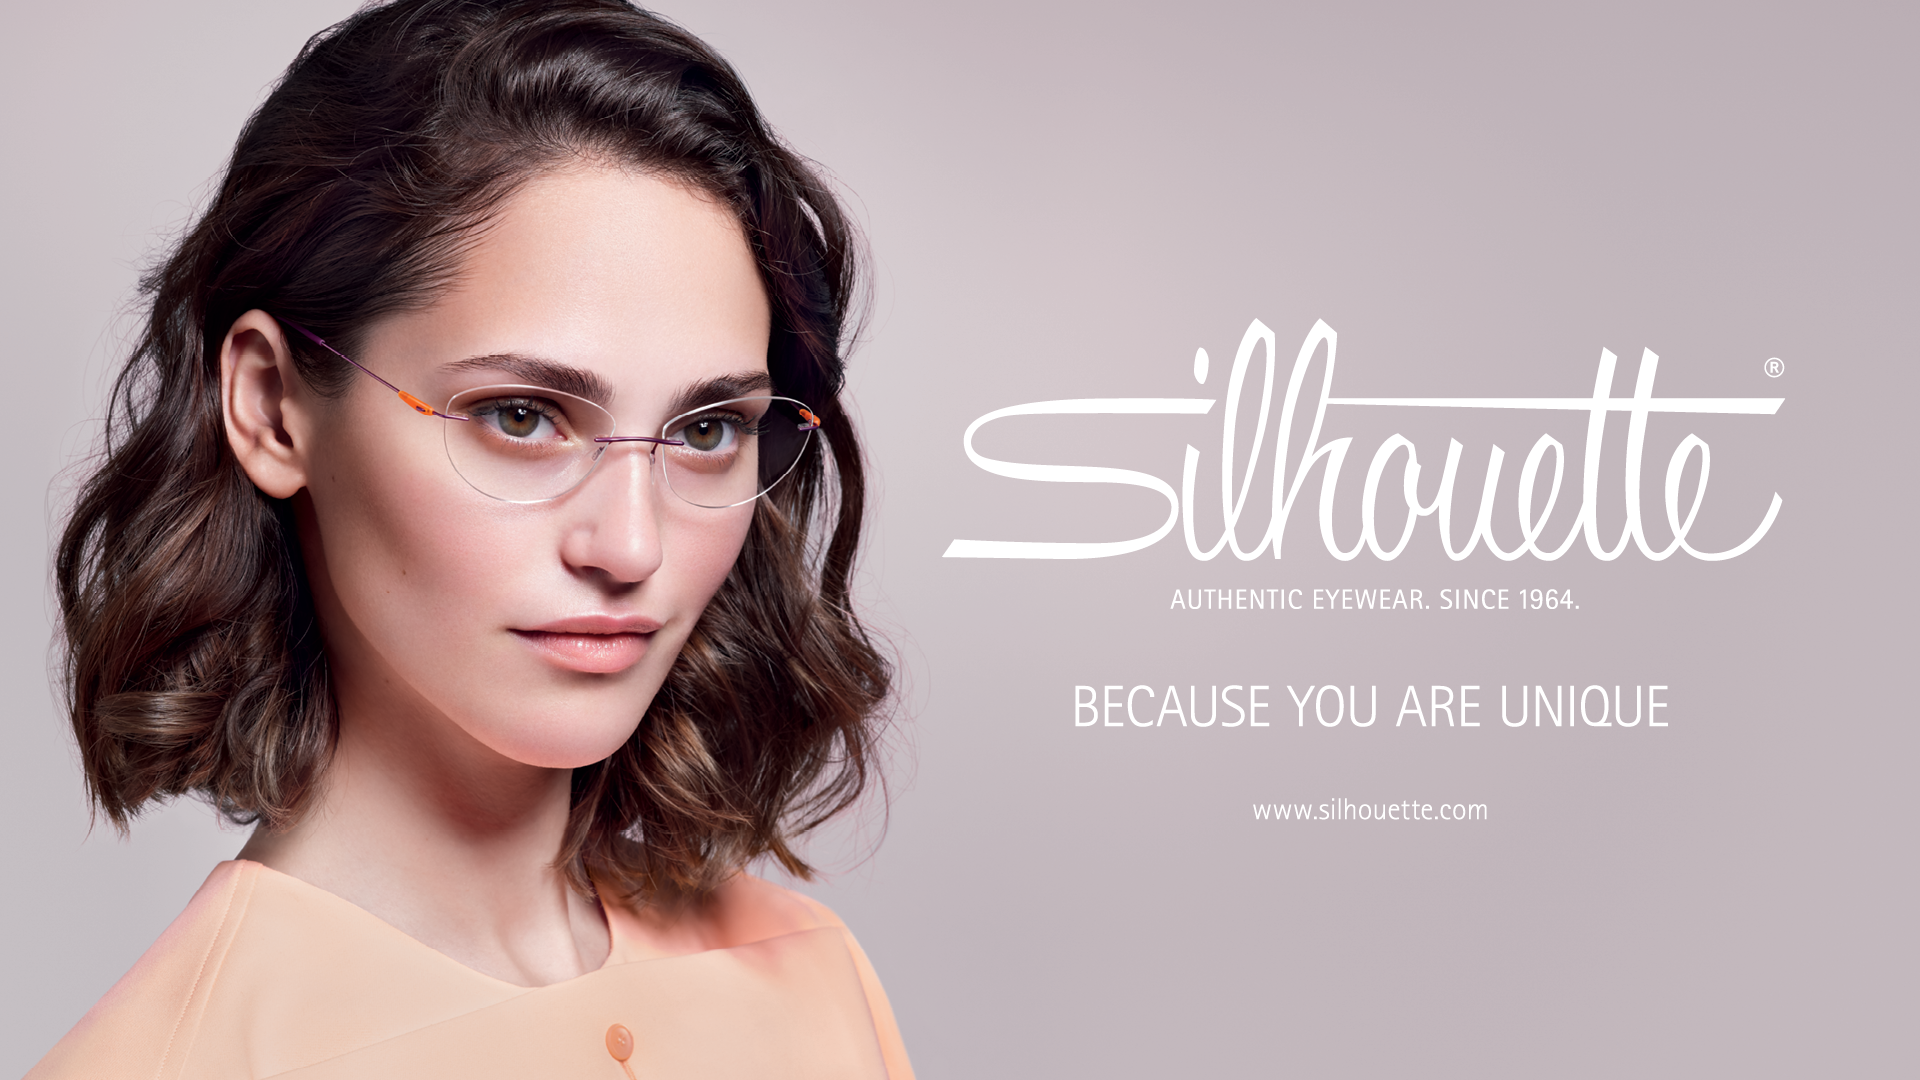 Sil_2016Campaign_DigiScreen_Colorwave1.png